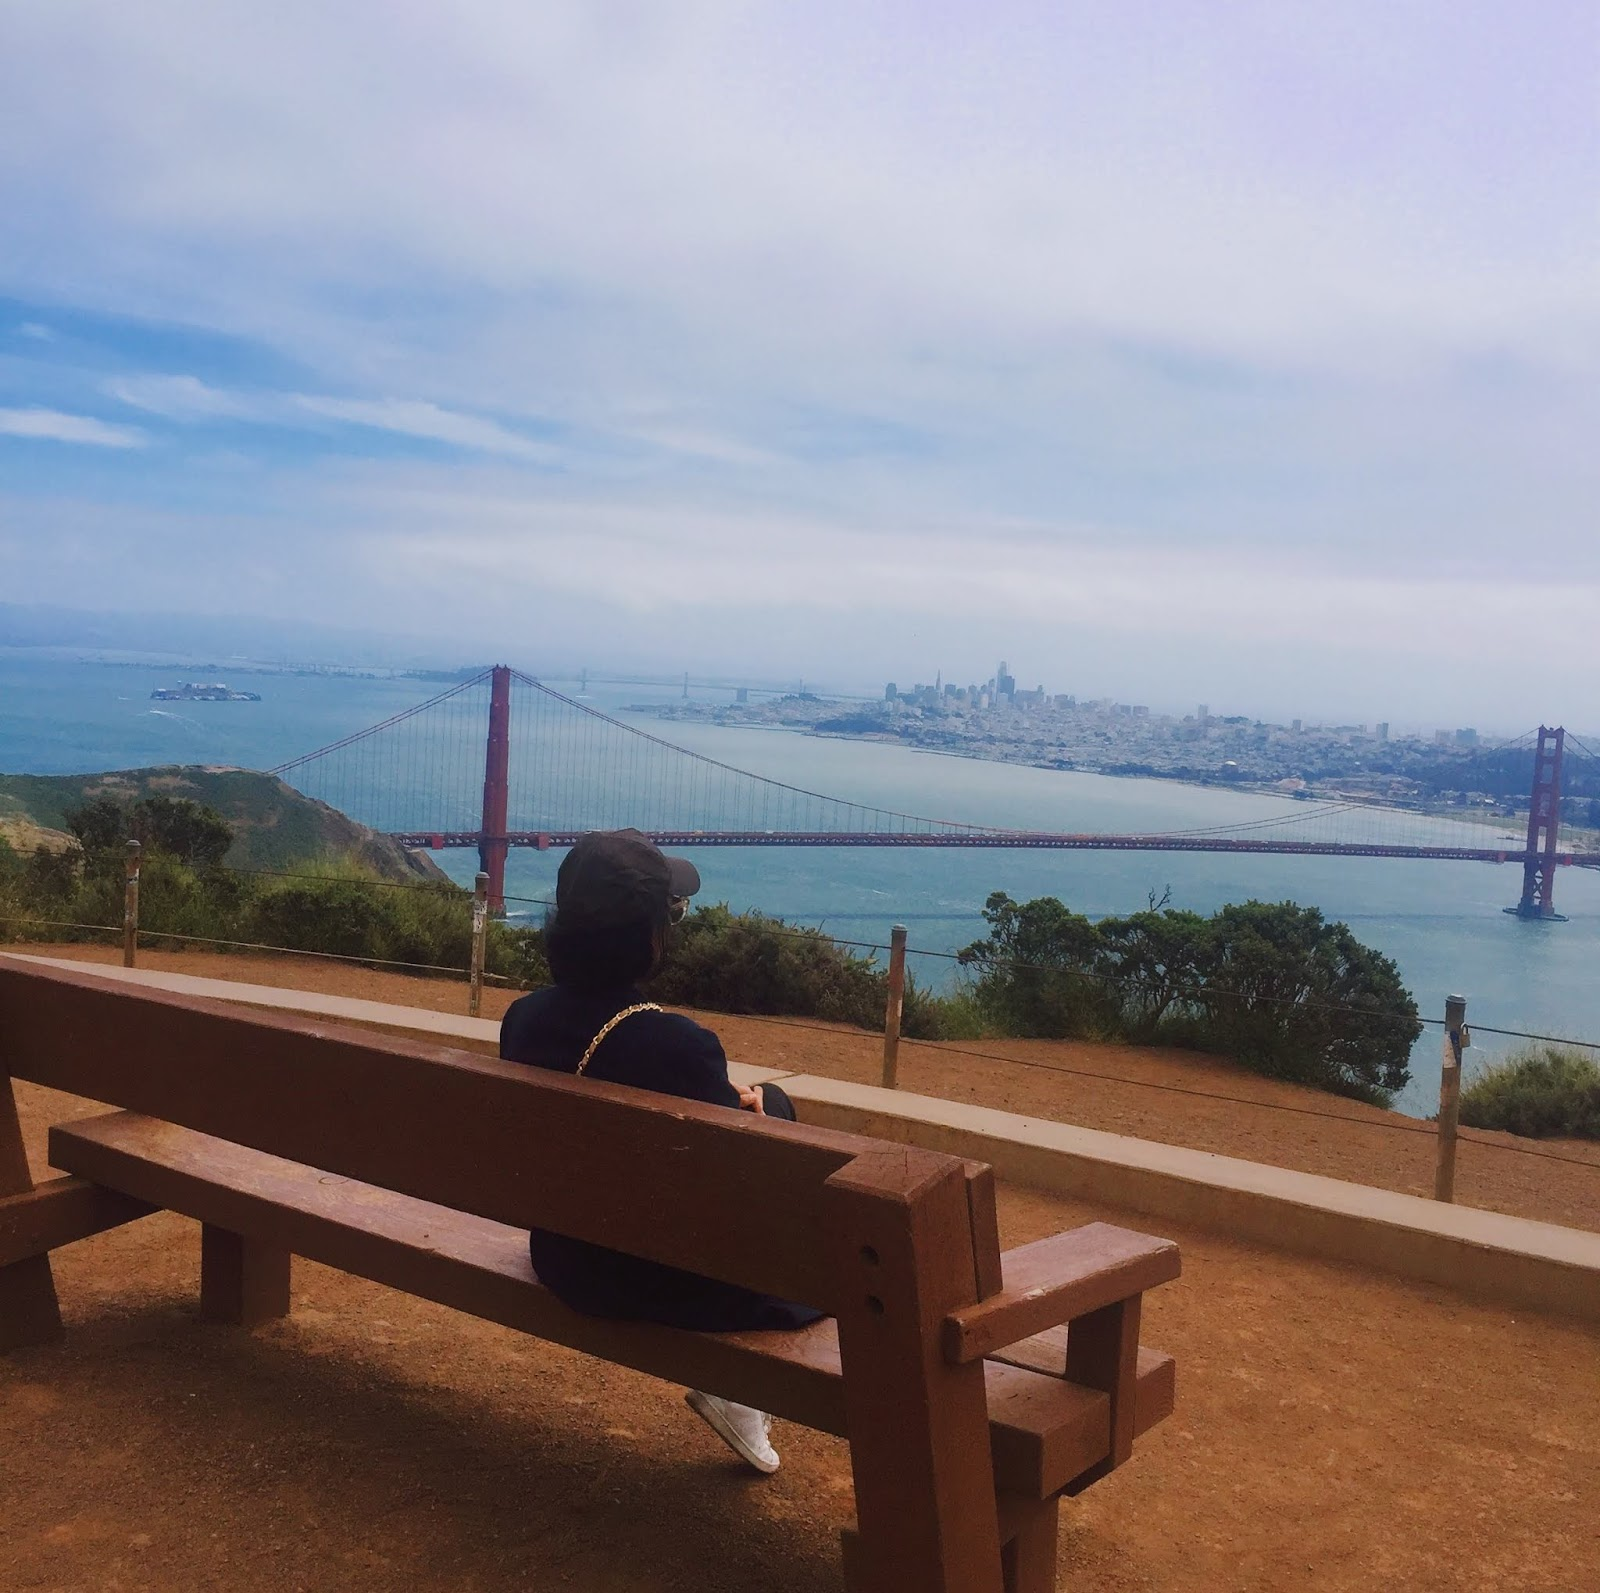 Where to get best views of Golden Gate Bridge - San Francisco Sustainable Travel Guide - Vegan San Francisco